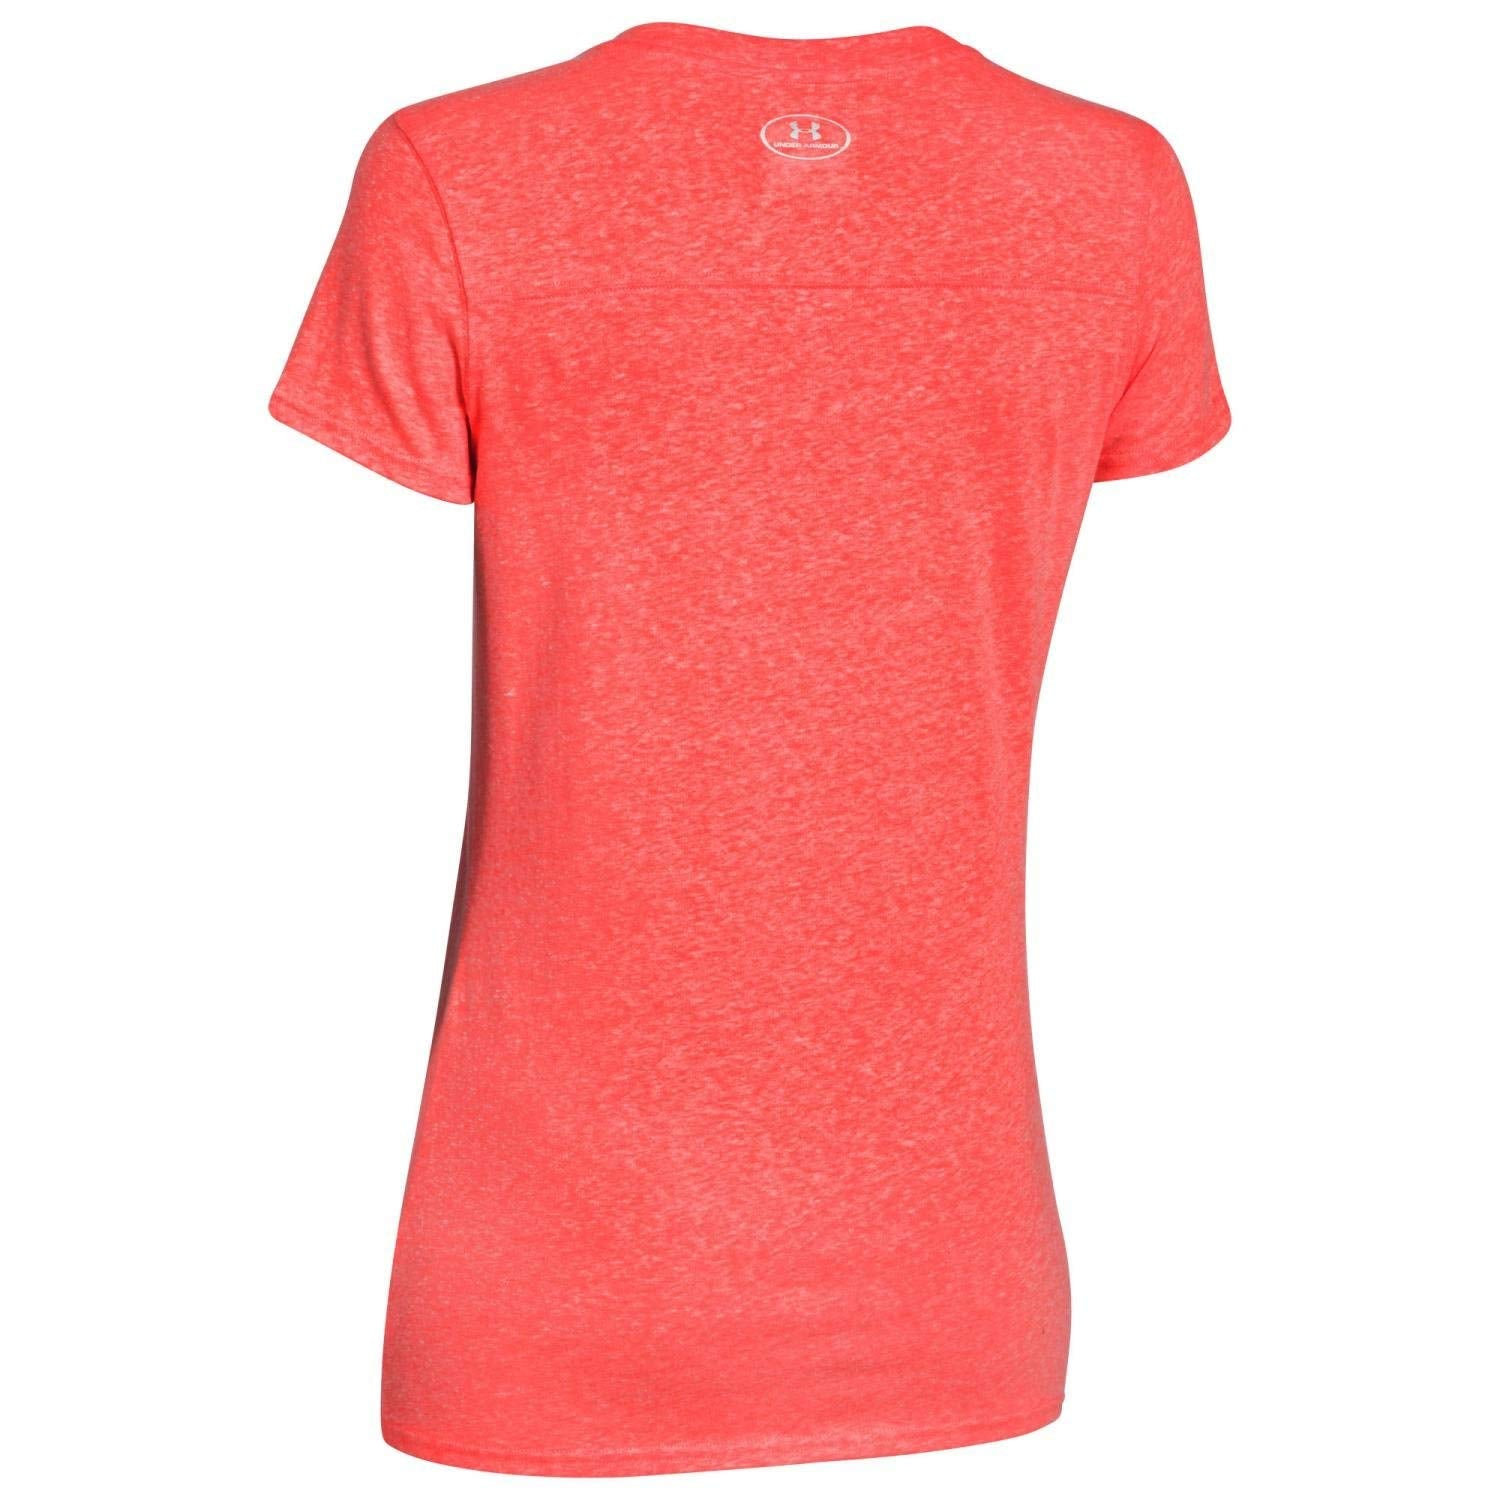 Under Armour Women's Workout T-Shirt Wordmark Standout T-Shirt